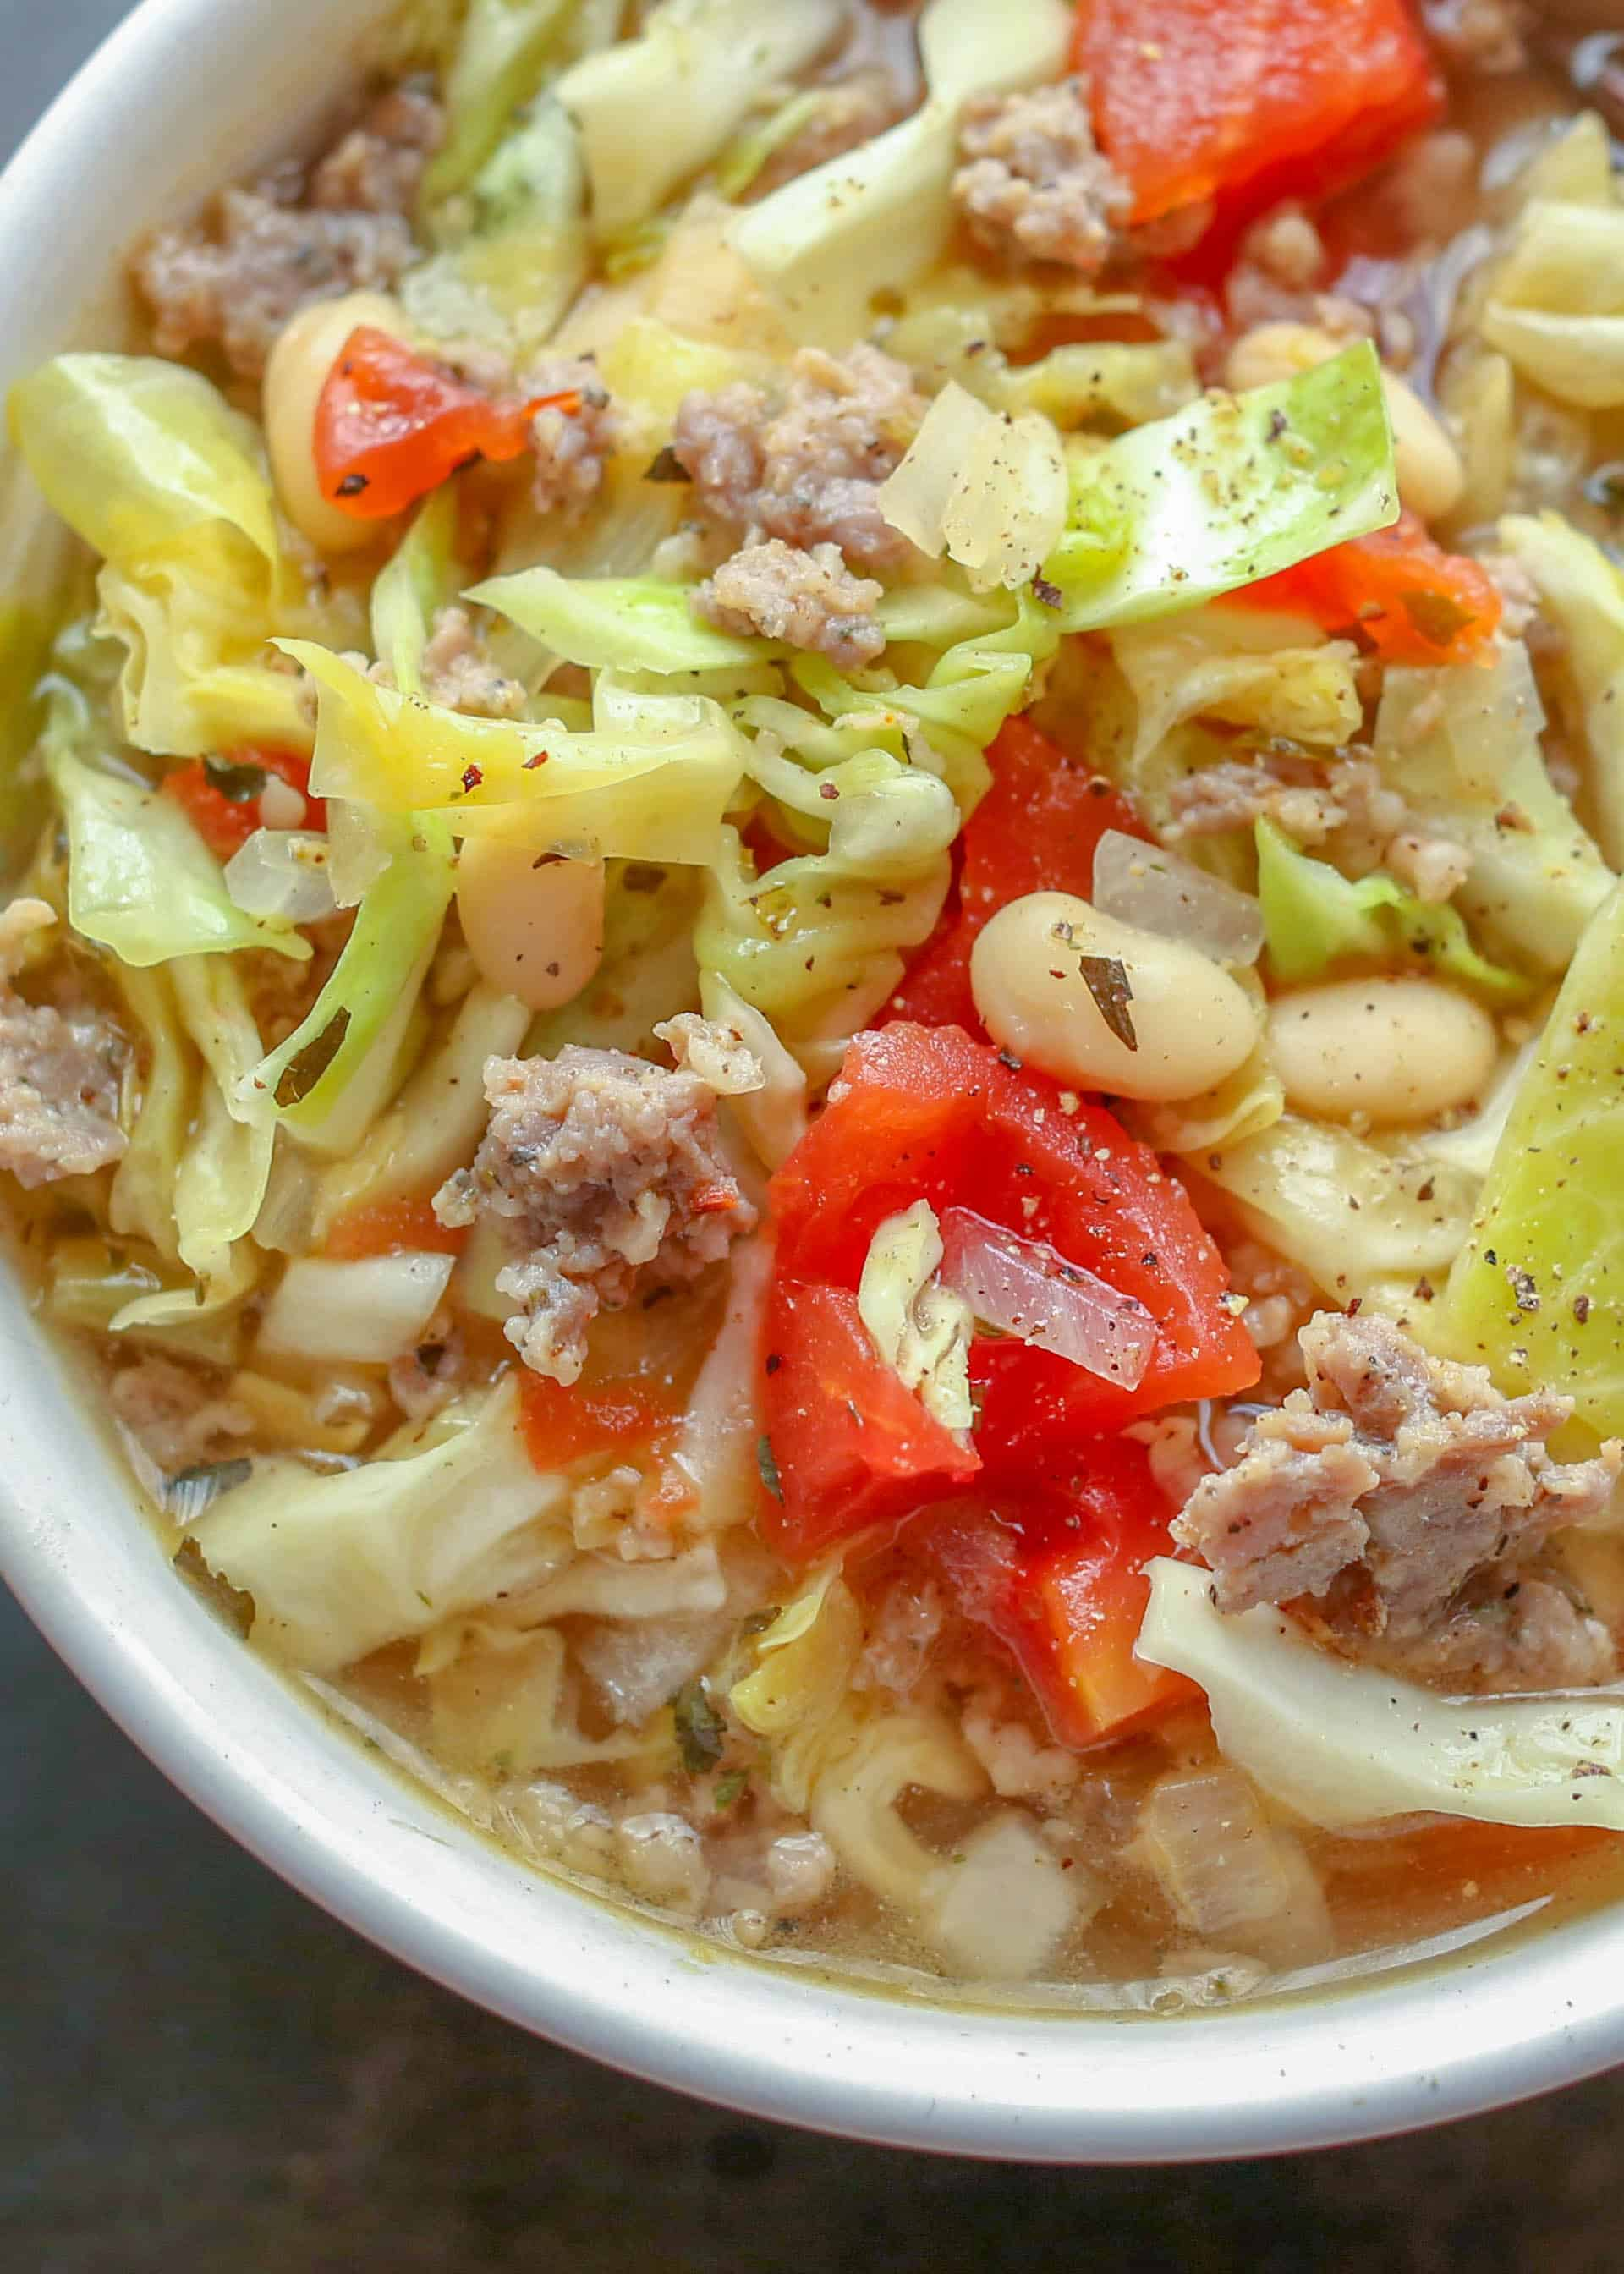 Italian White Bean Cabbage And Sausage Soup Barefeet In The Kitchen